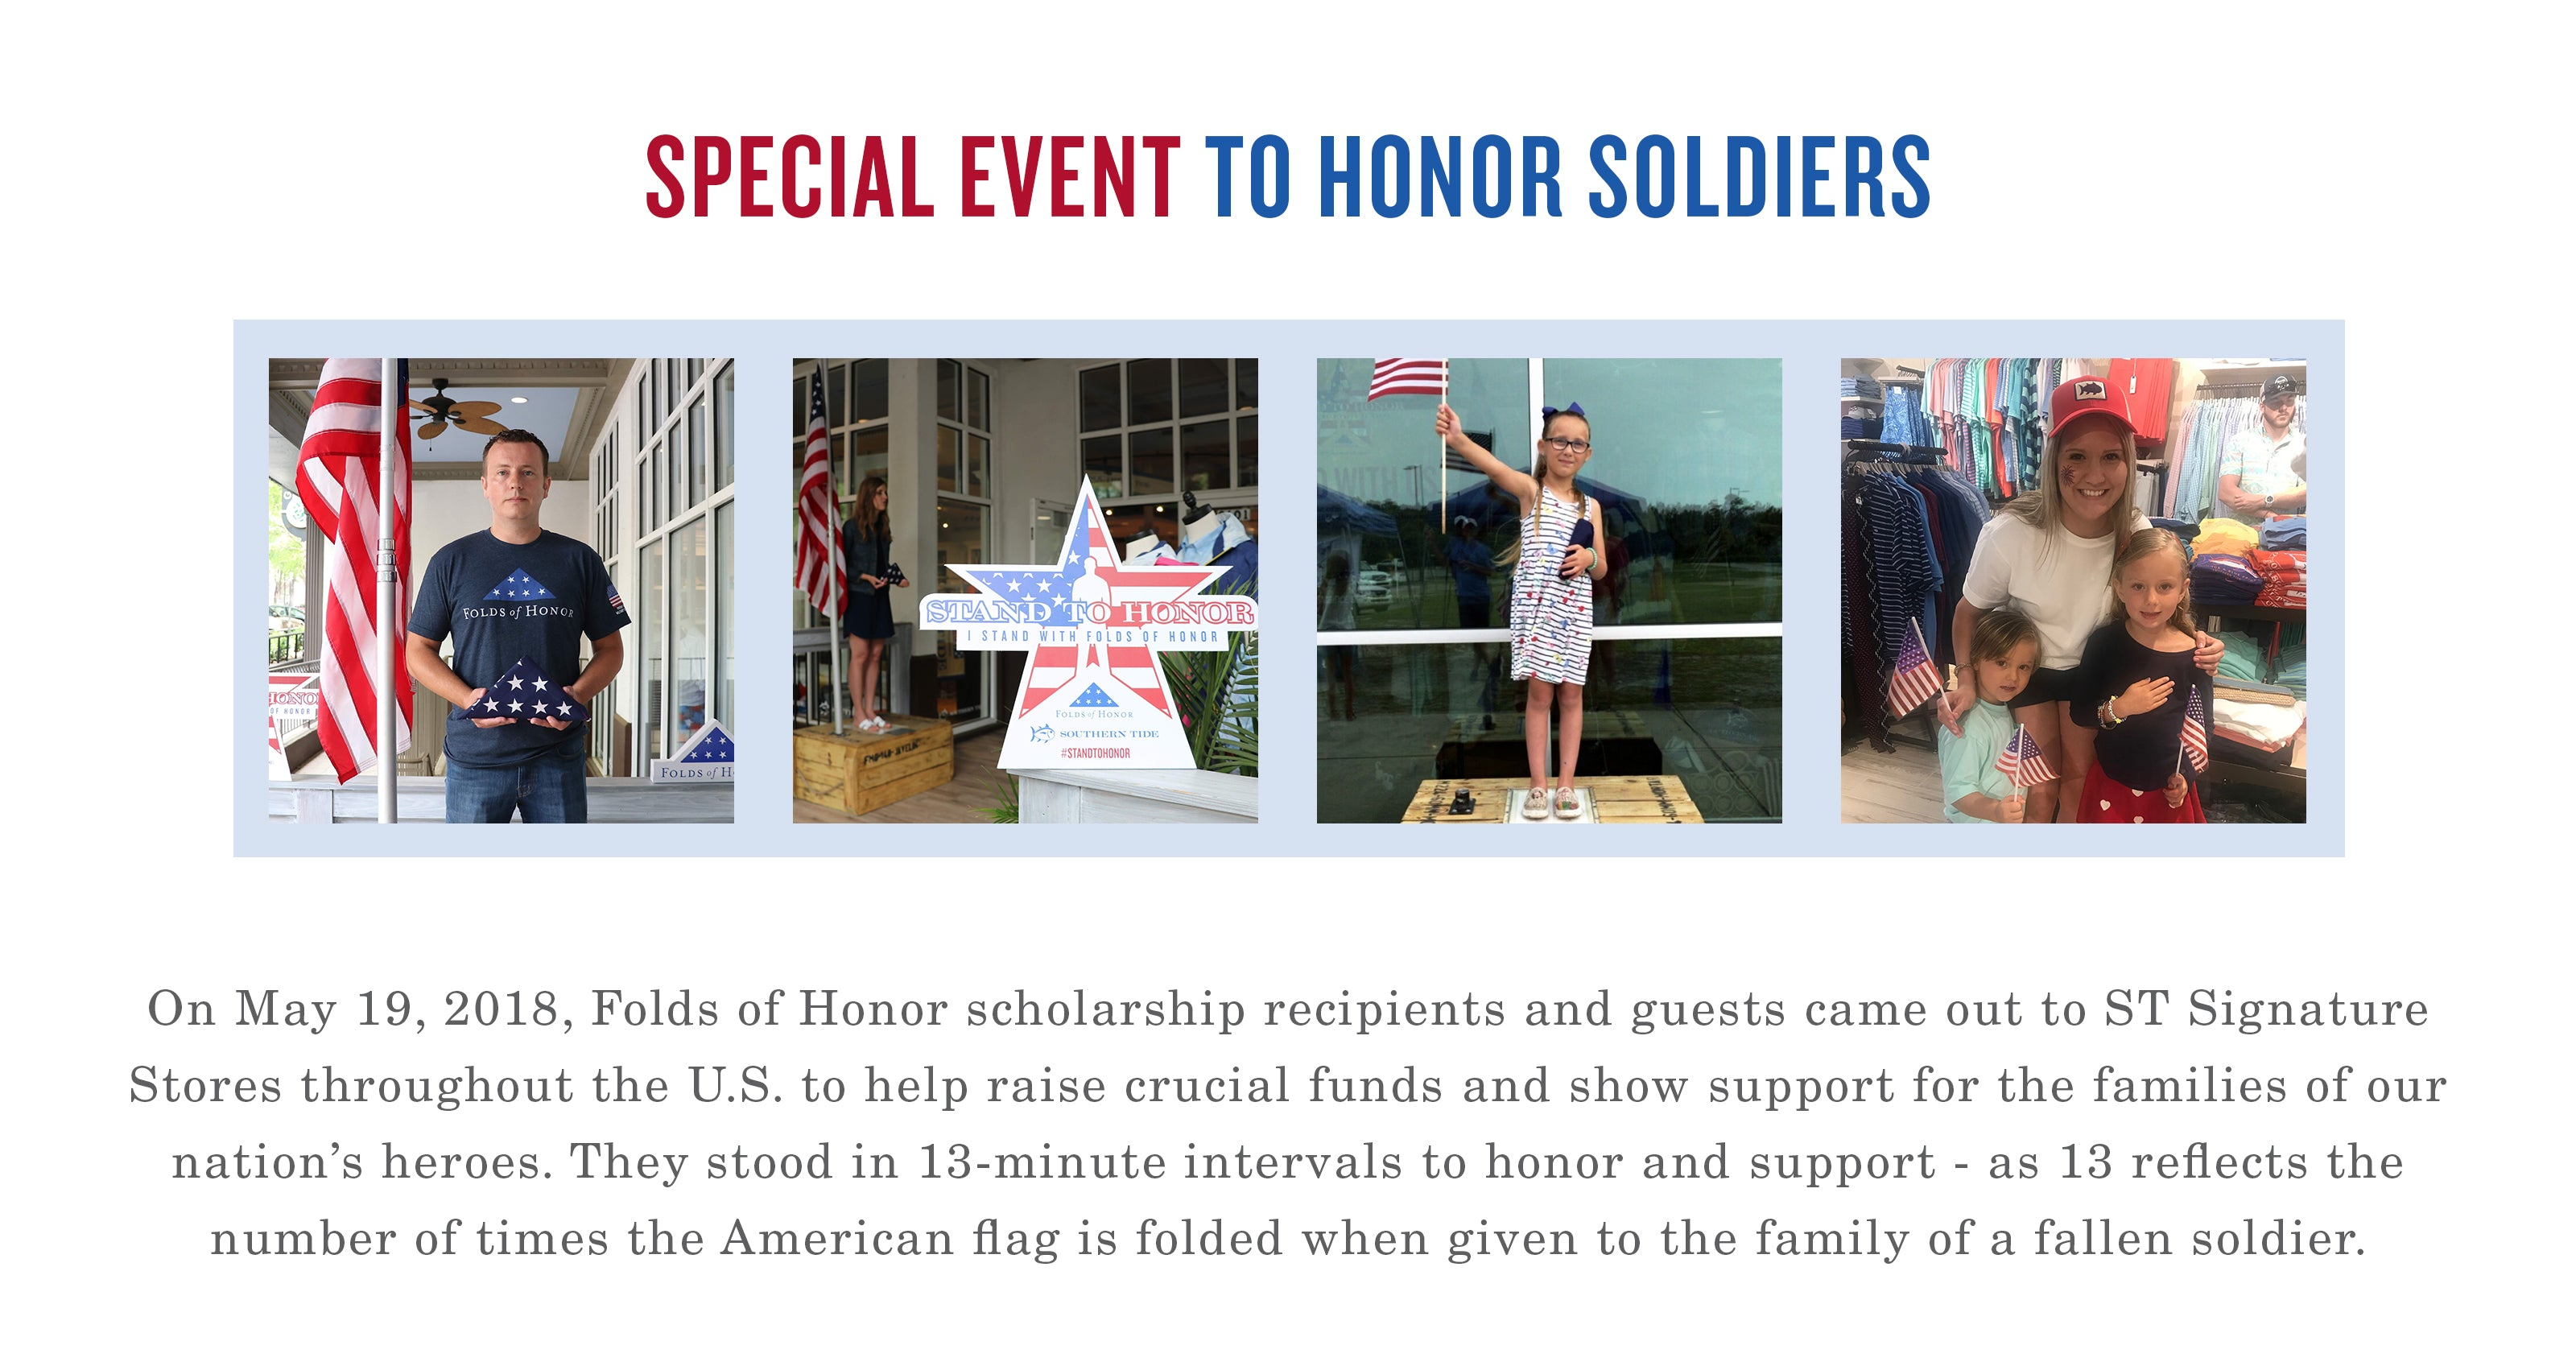 In May 2018 we held a stand to honor event in partnership with Folds of Honor and our Signature Stores